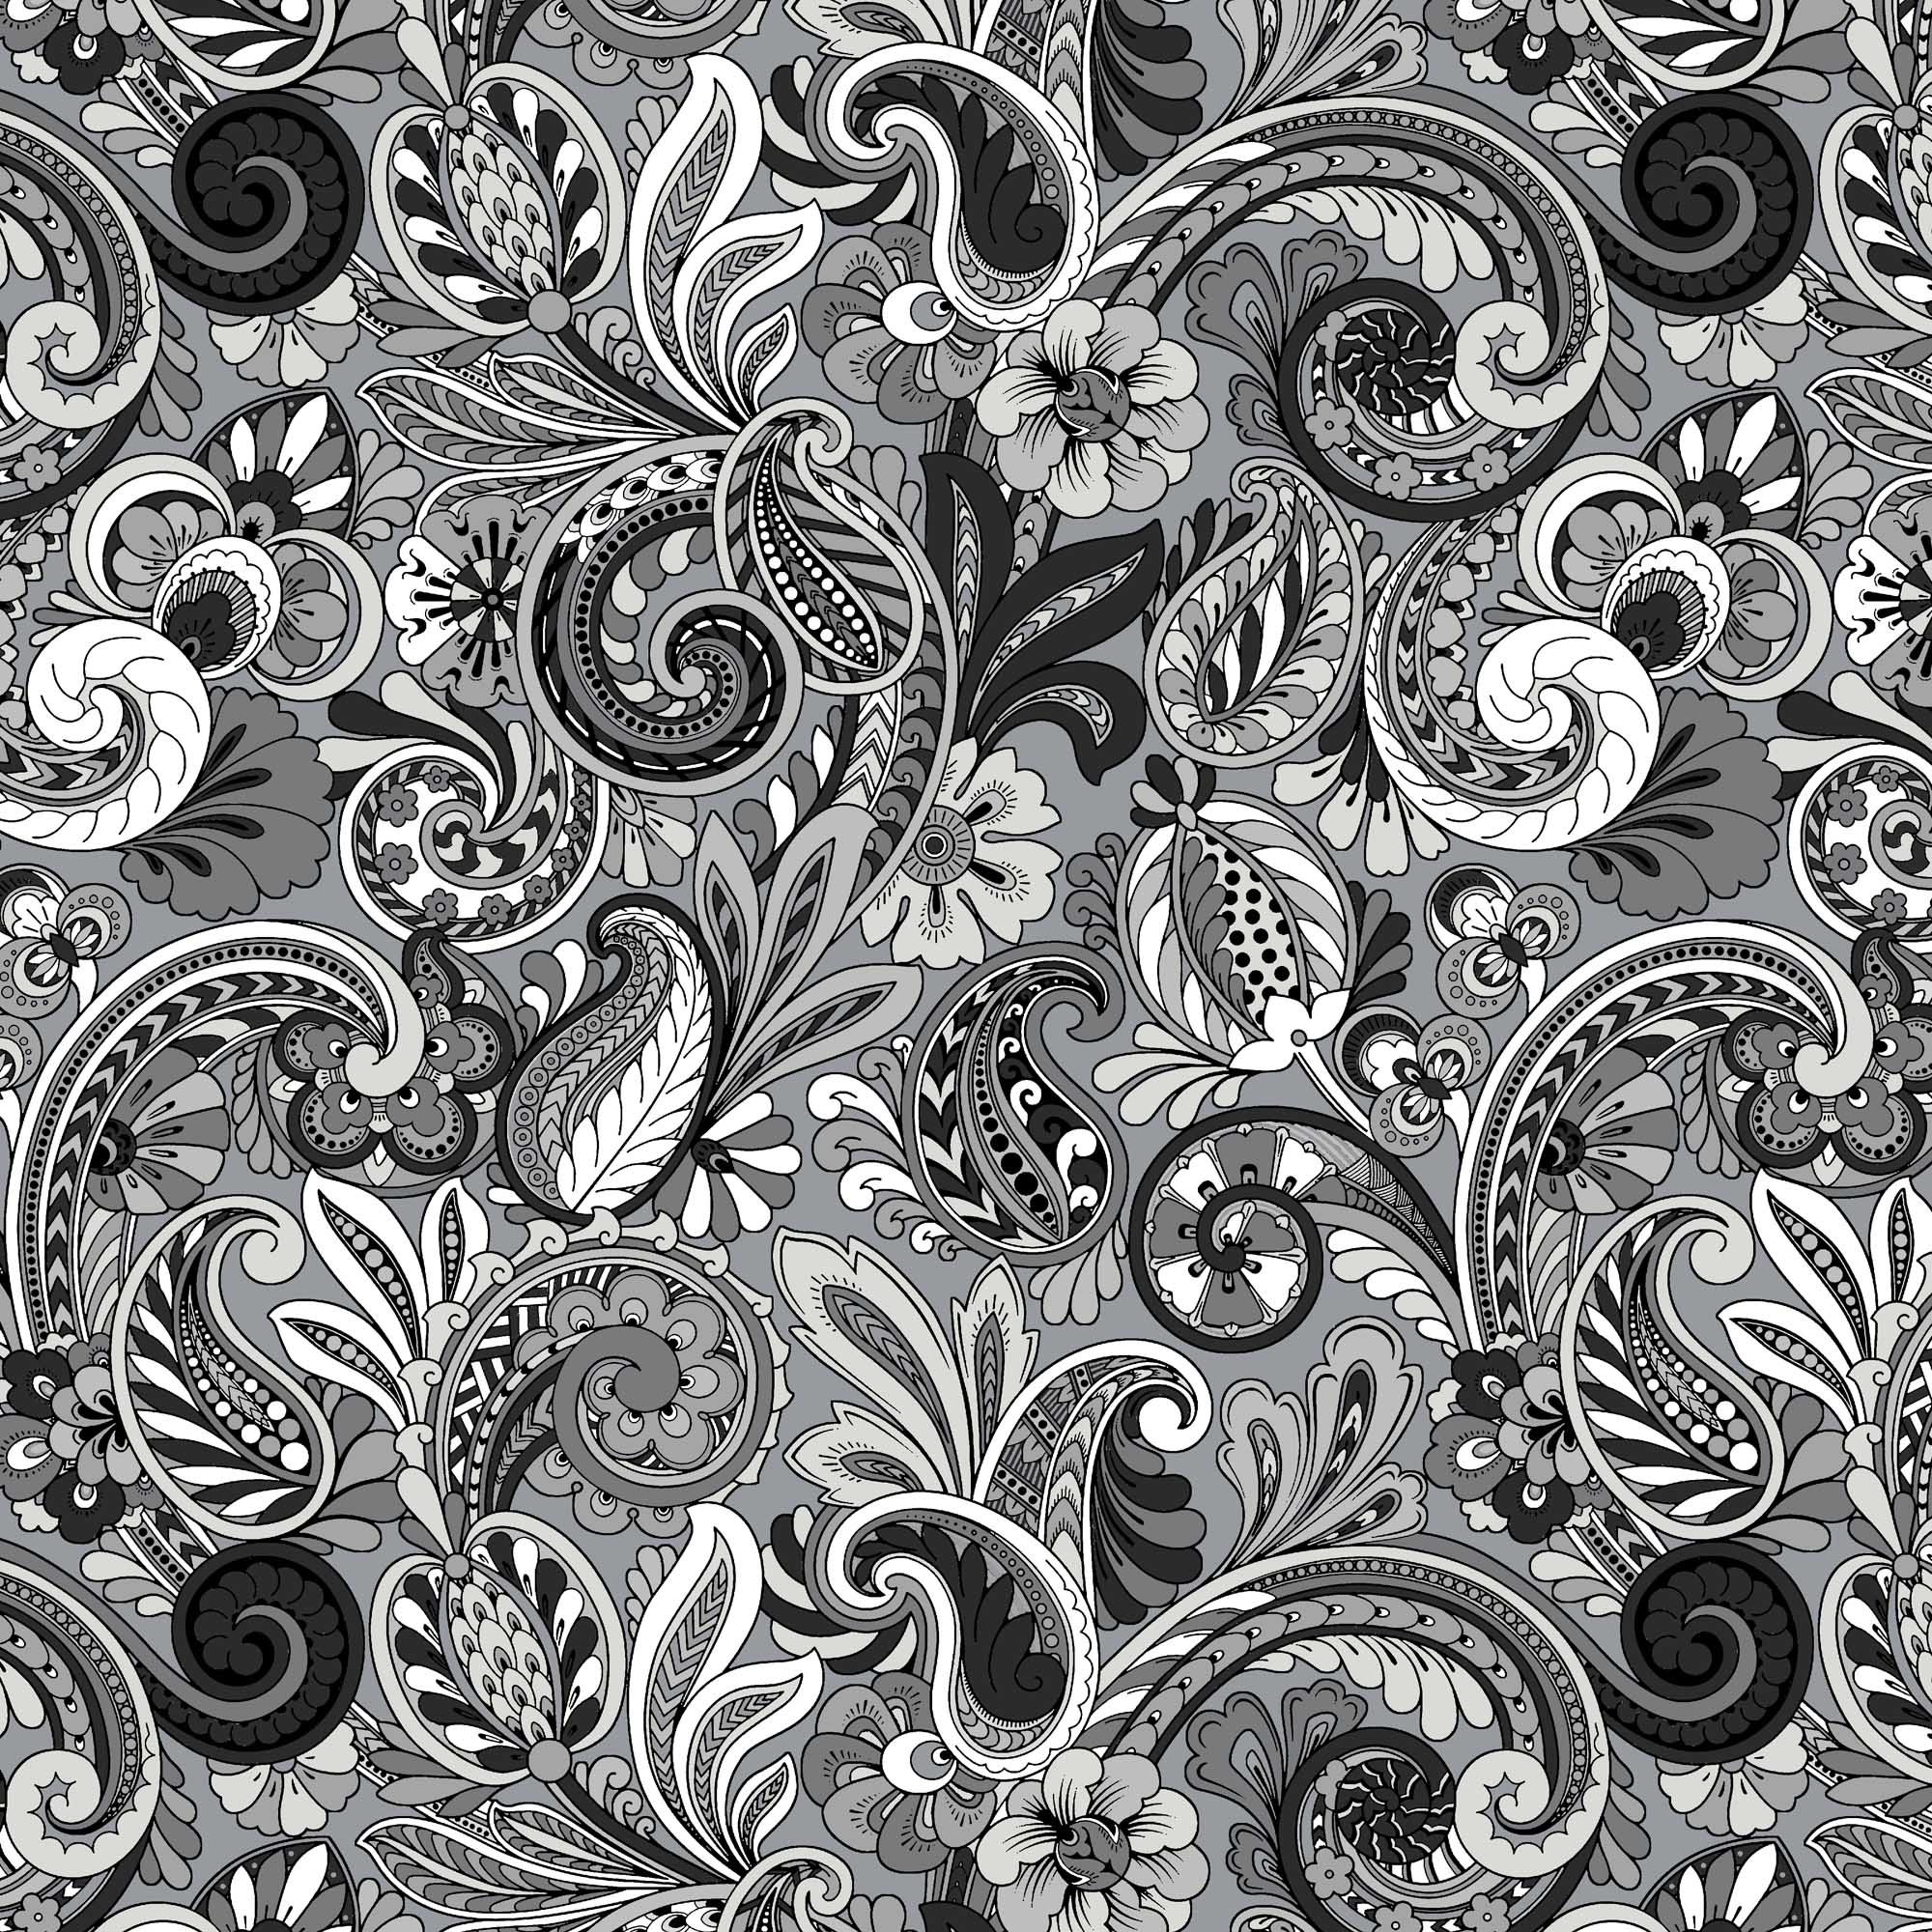 David Textiles Cotton Precut Fabric Paisley Sorbet 1 Yd X 44 Inches